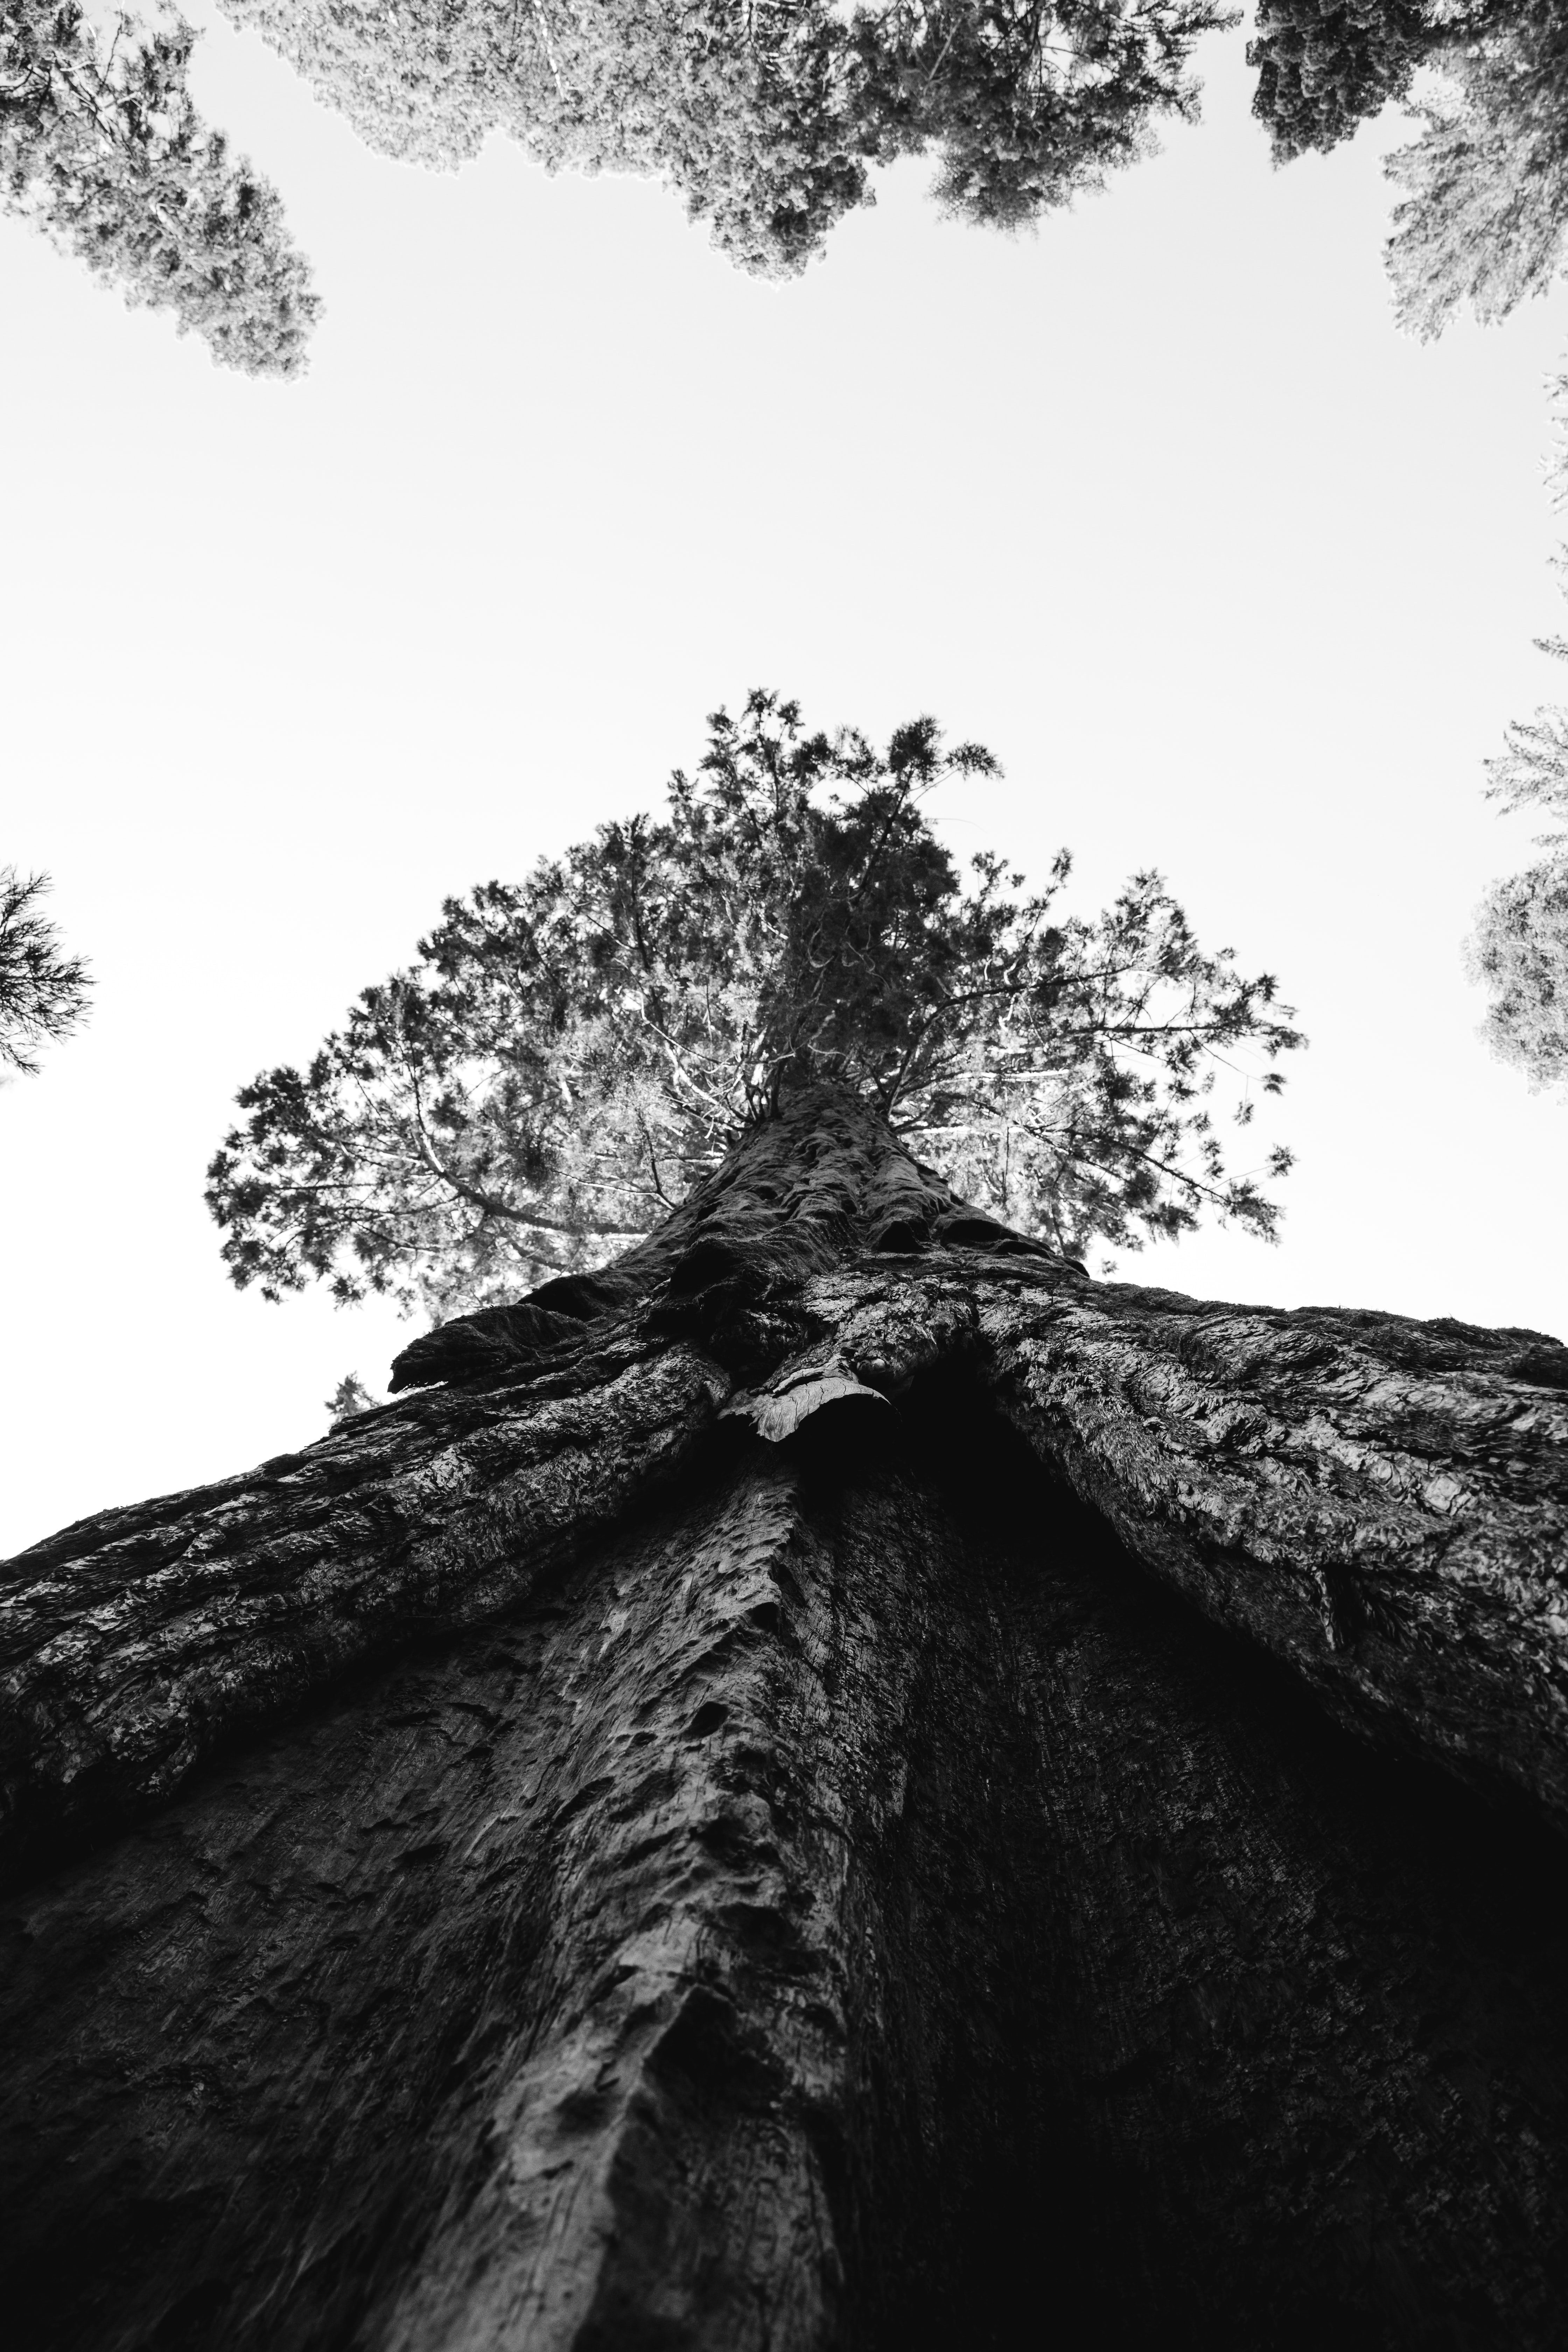 low angle and grayscale photography tree